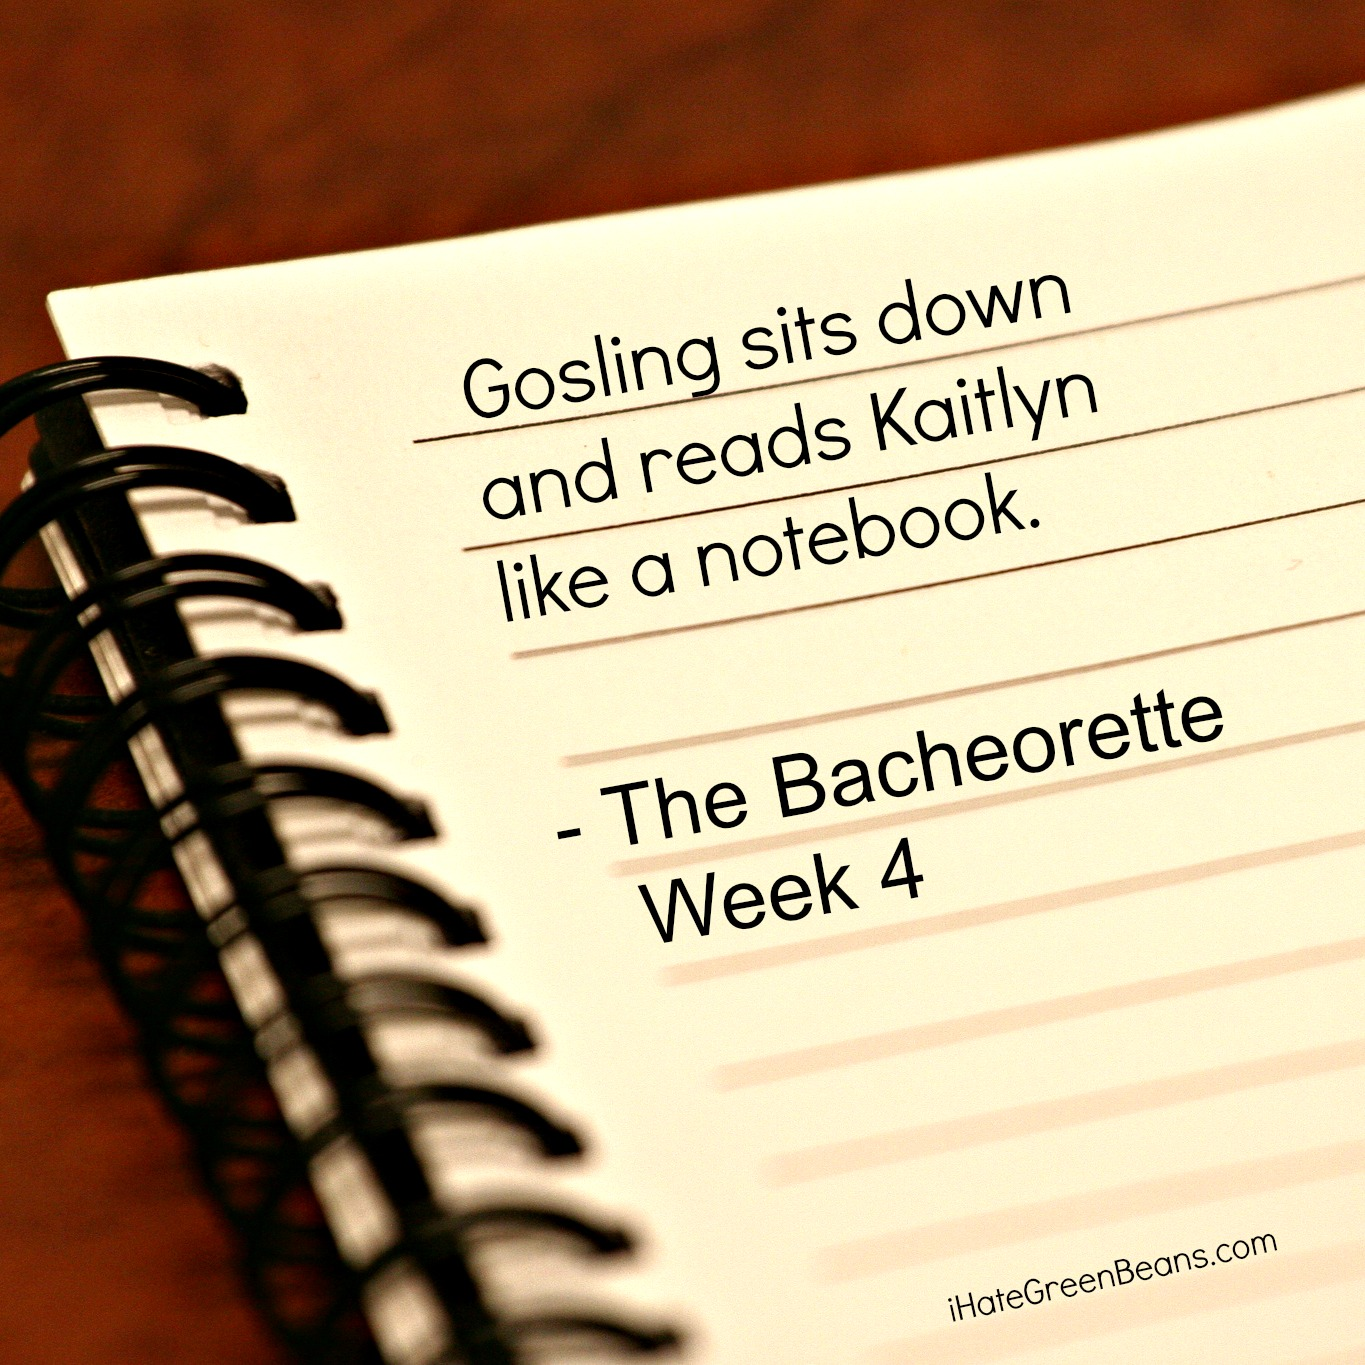 funny bachelorette recap-The Bachelorette Week 4